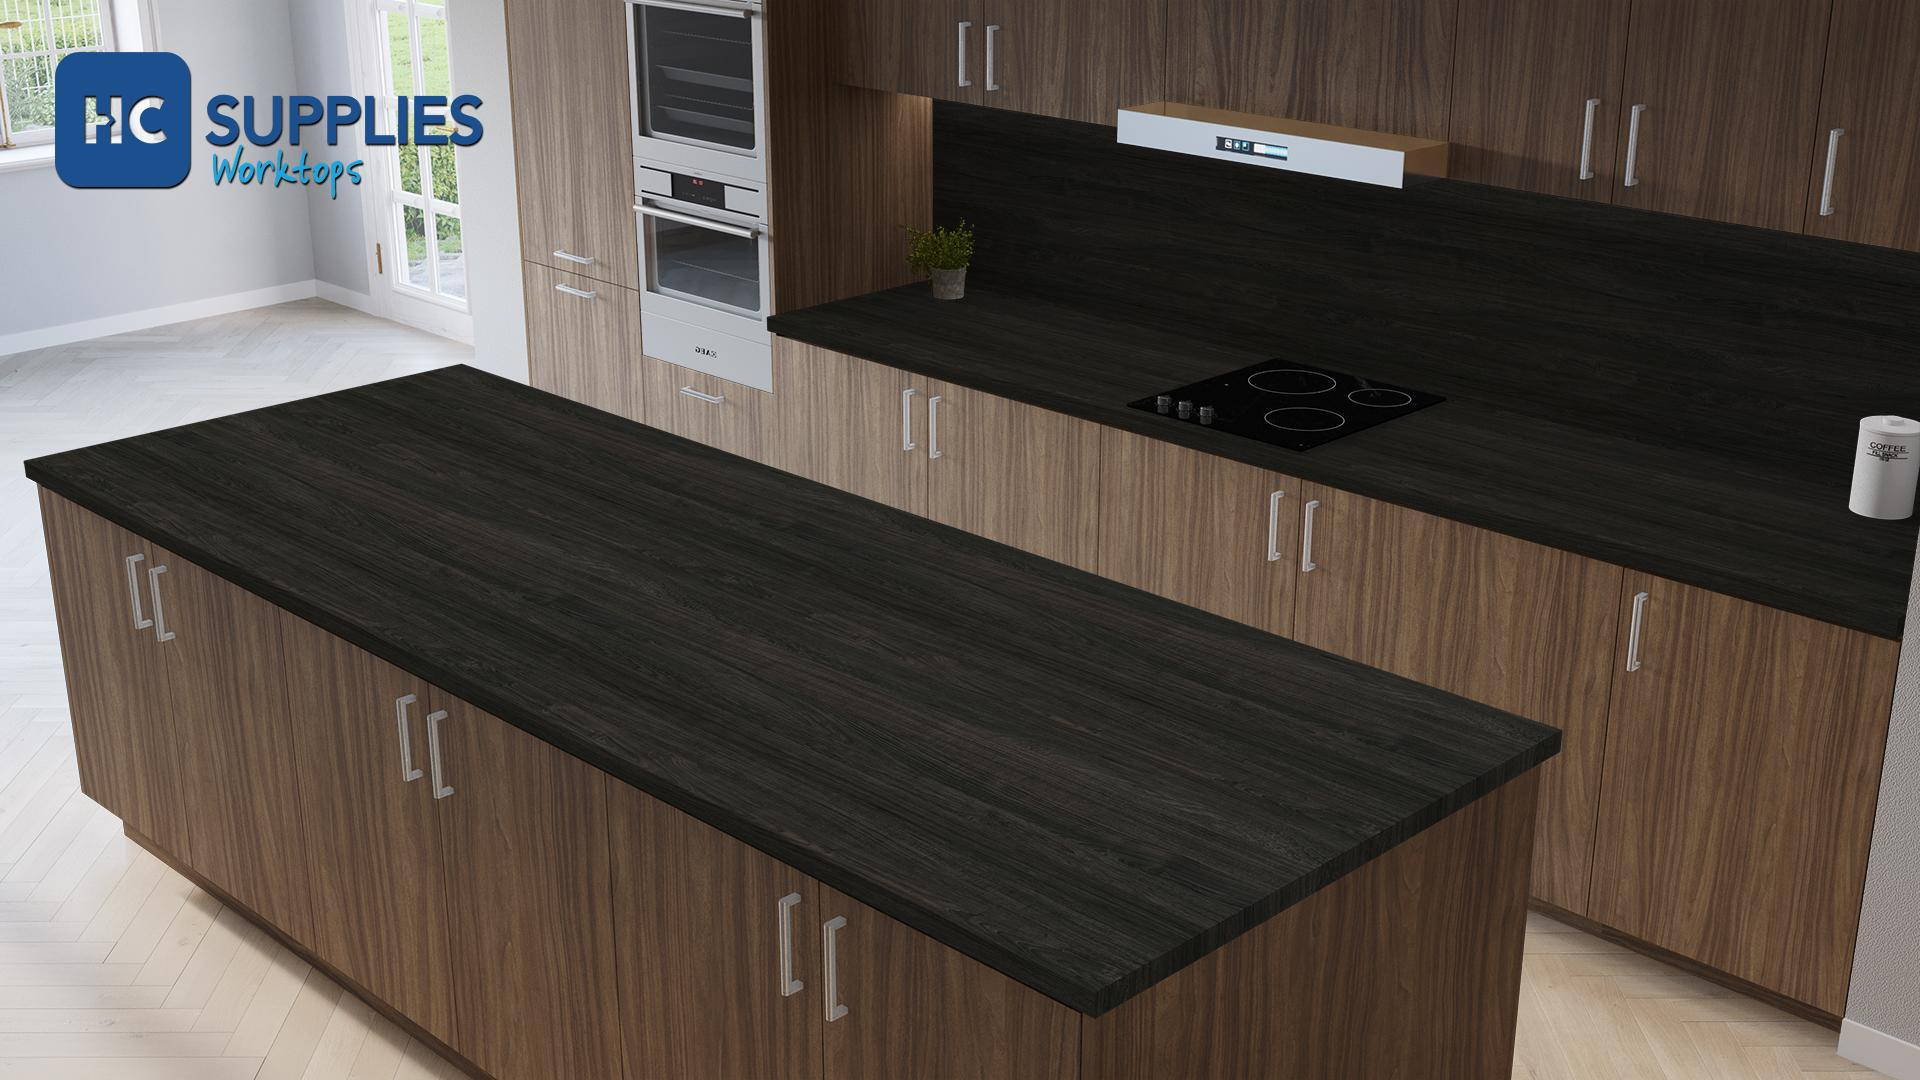 Kronodesign Carbon Marine Wood Super Matt Laminated Worktop